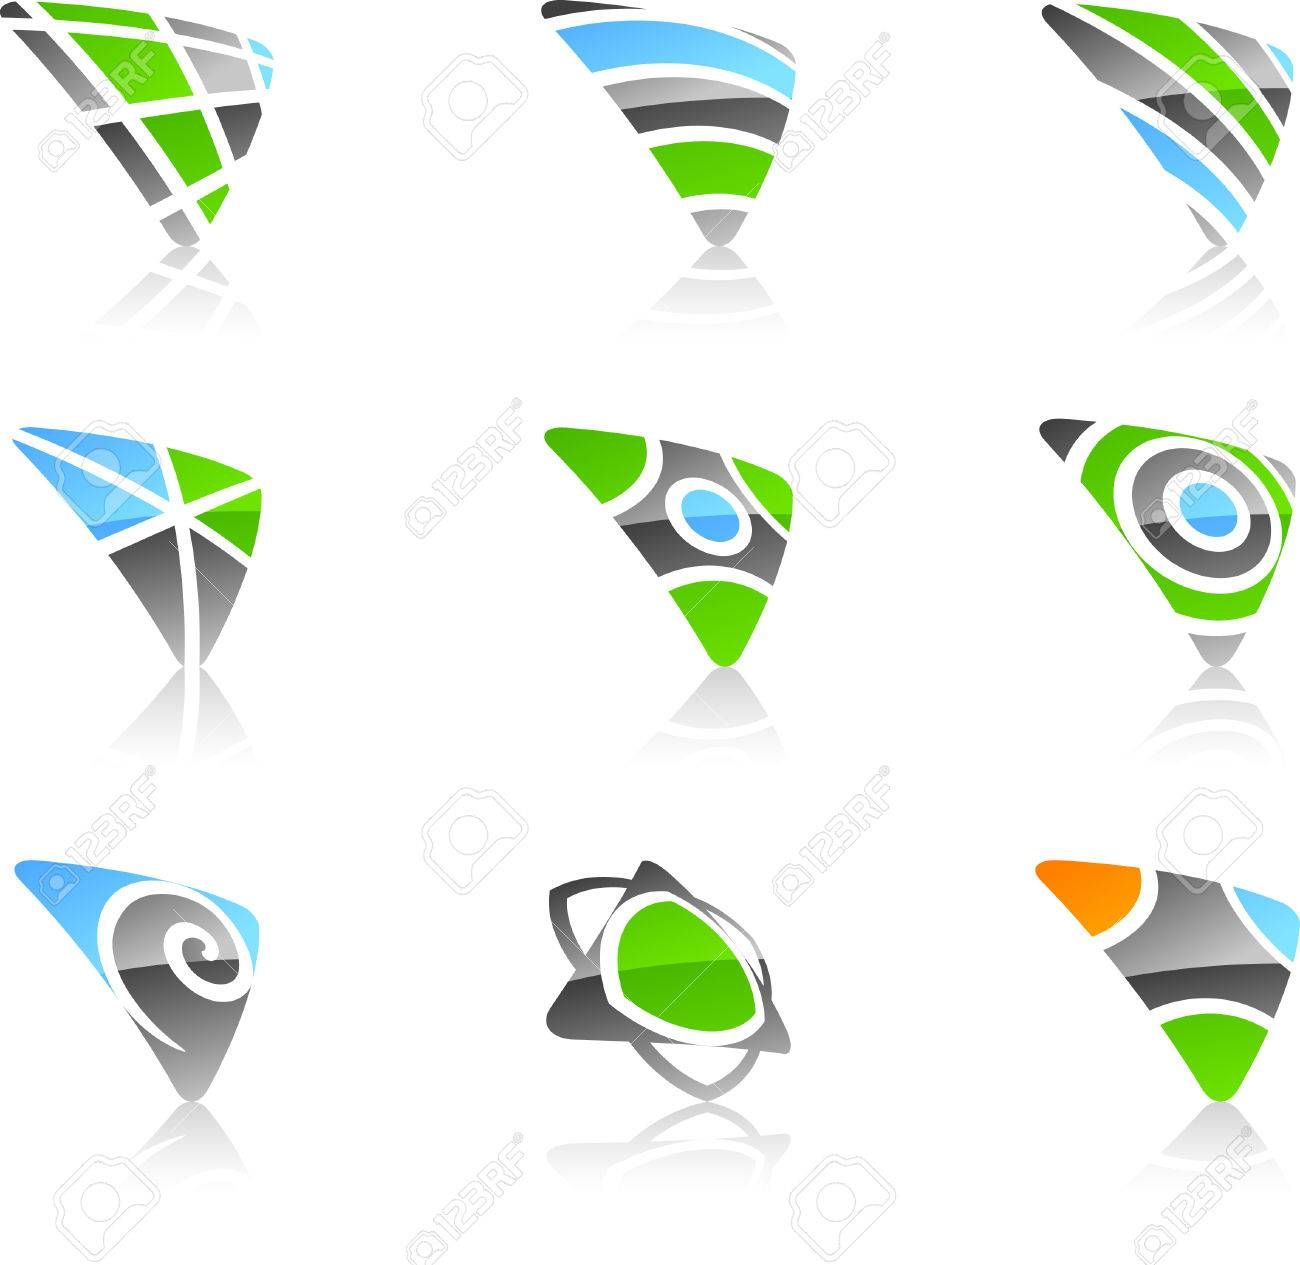 Abstract triangle symbols. Vector illustration. Stock Vector - 5349937